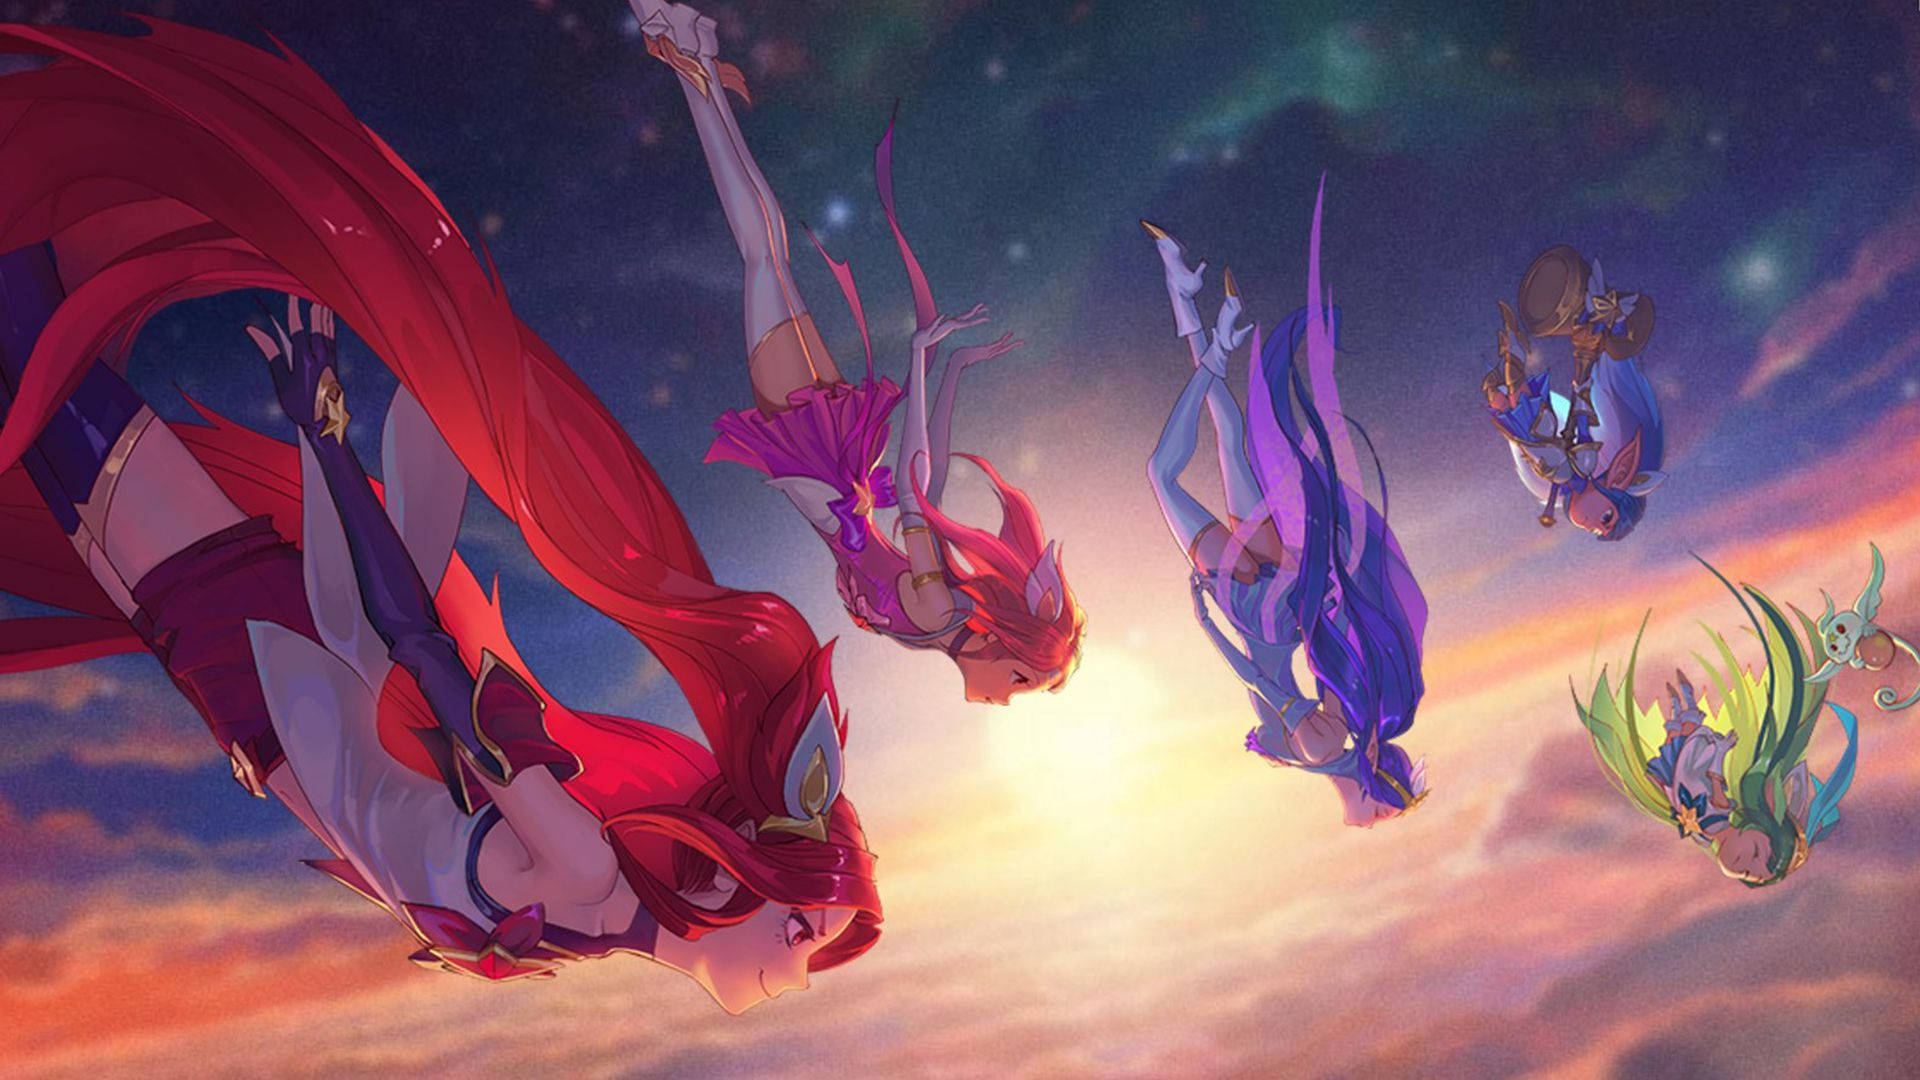 League Of Legends Star Guardian Wallpapers Credit To All Original